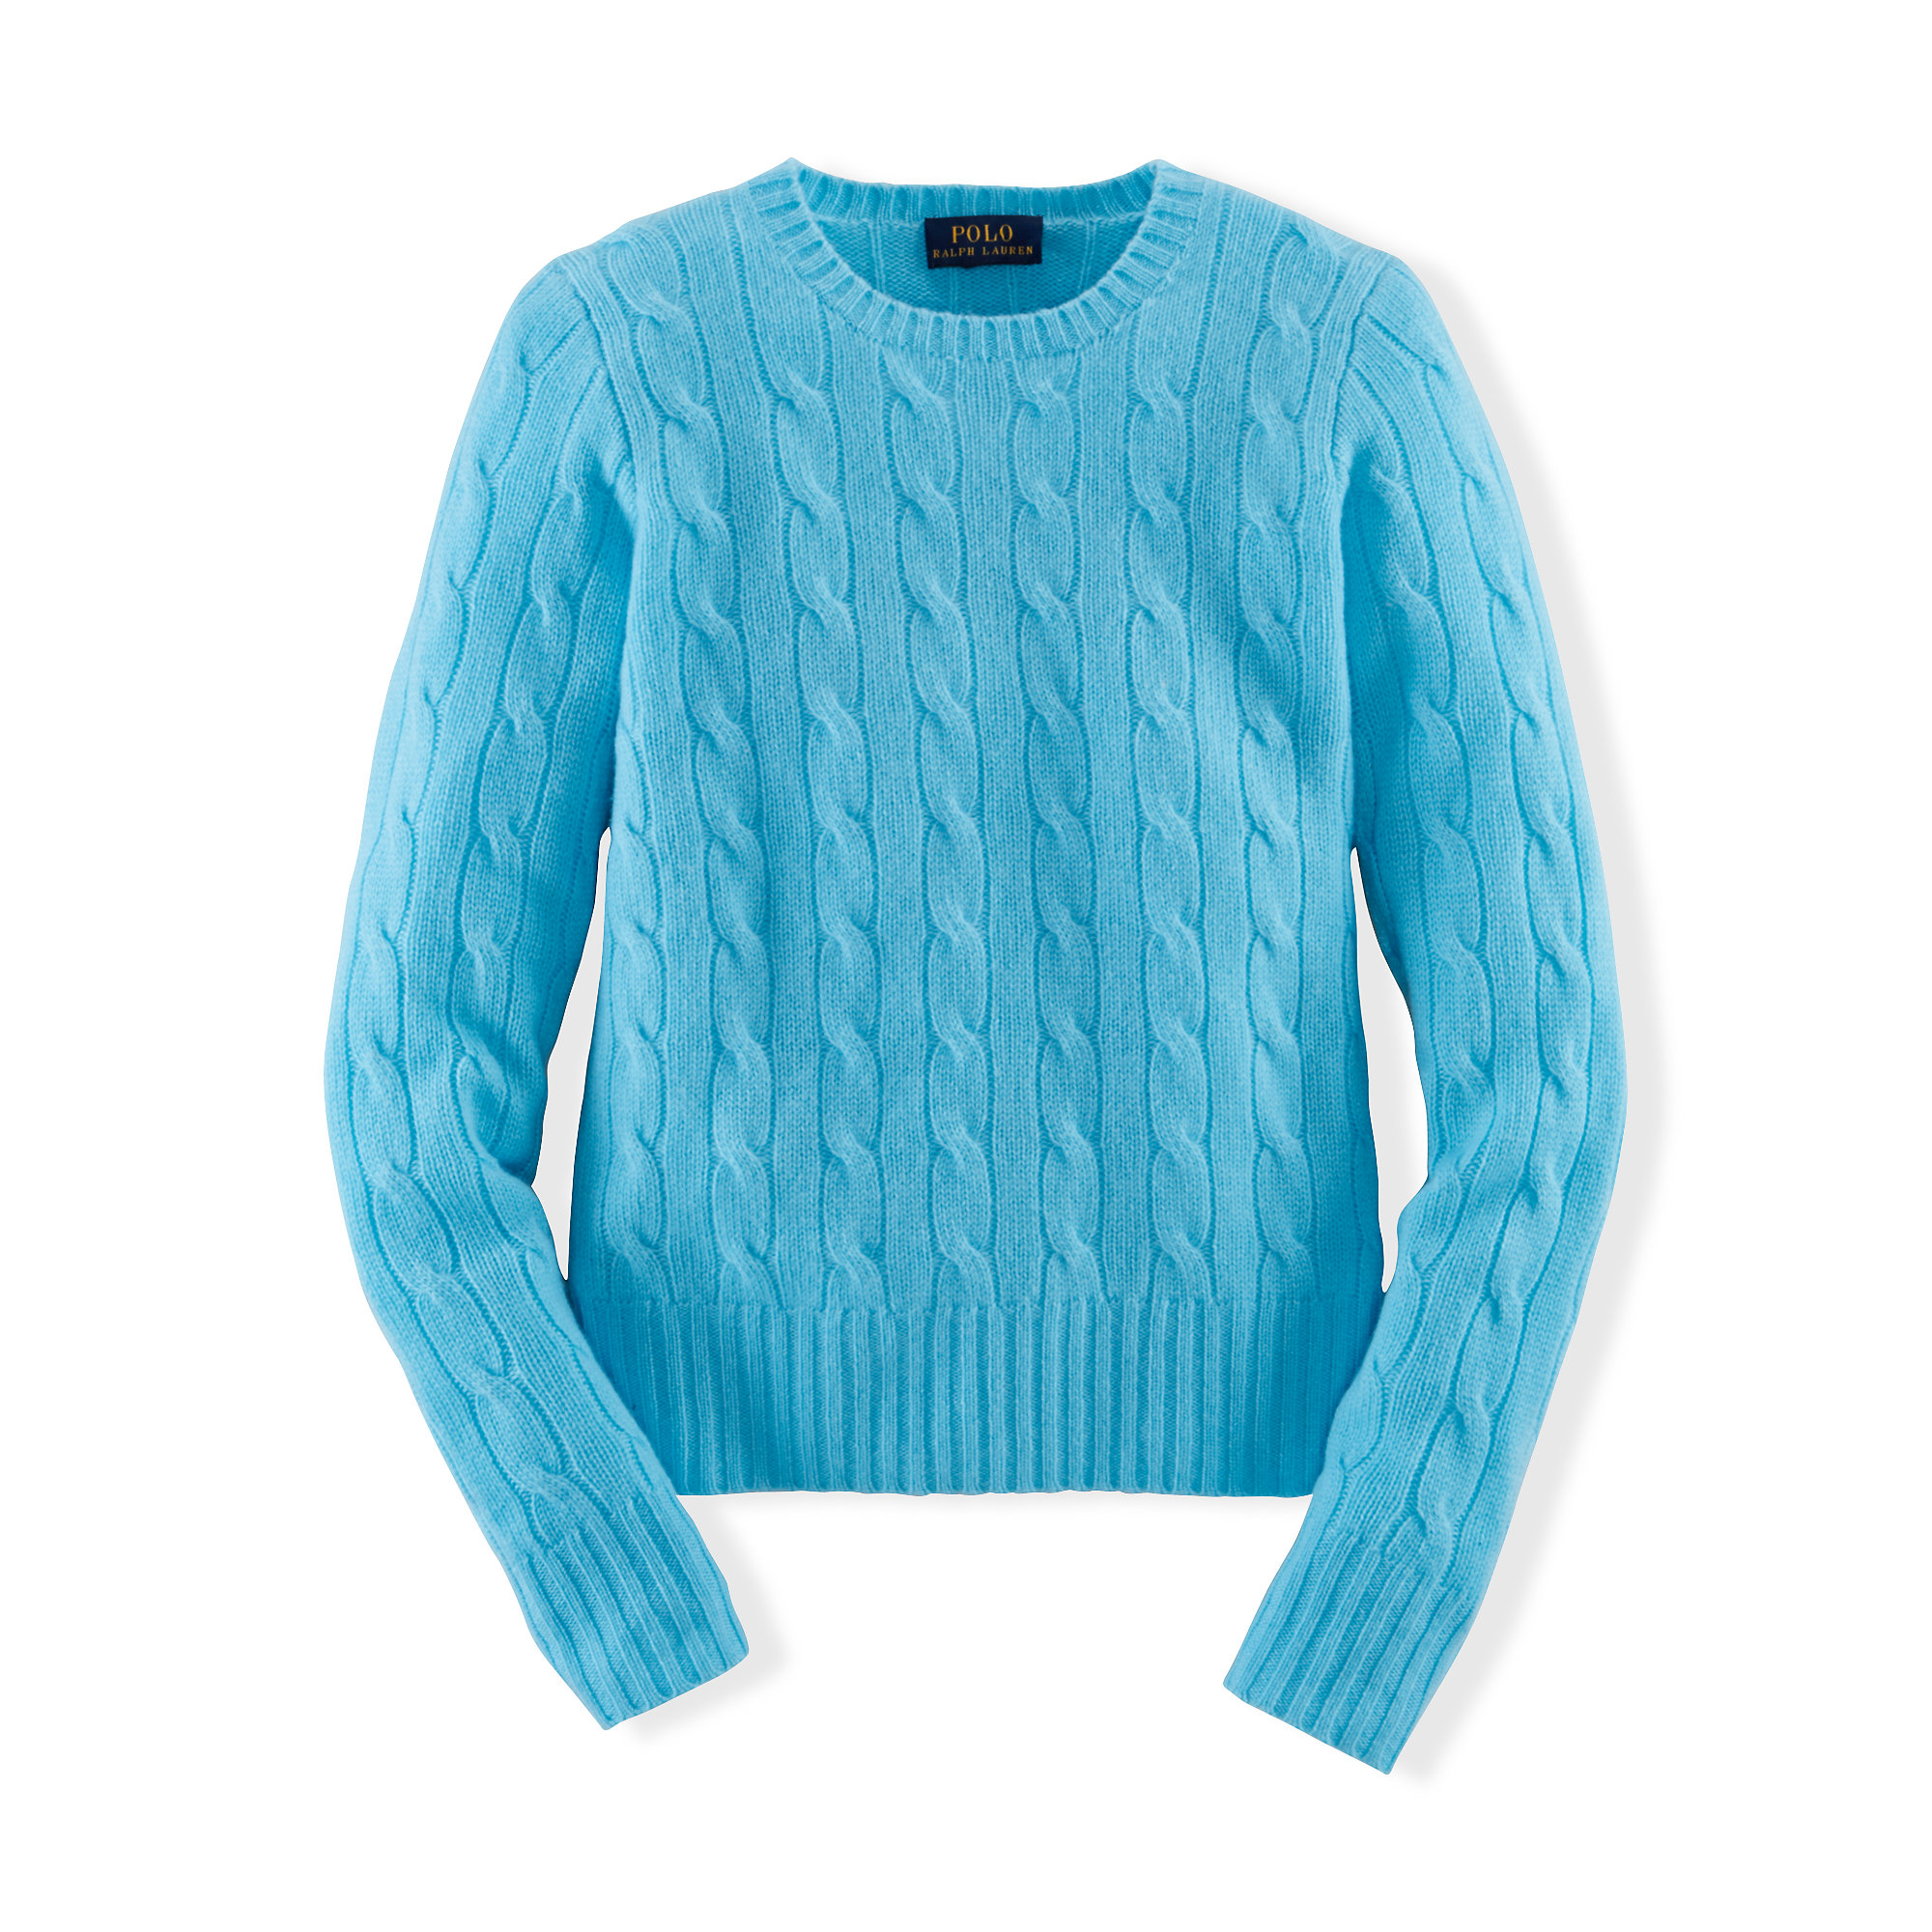 Ralph lauren Cable-knit Cashmere Sweater in Blue | Lyst